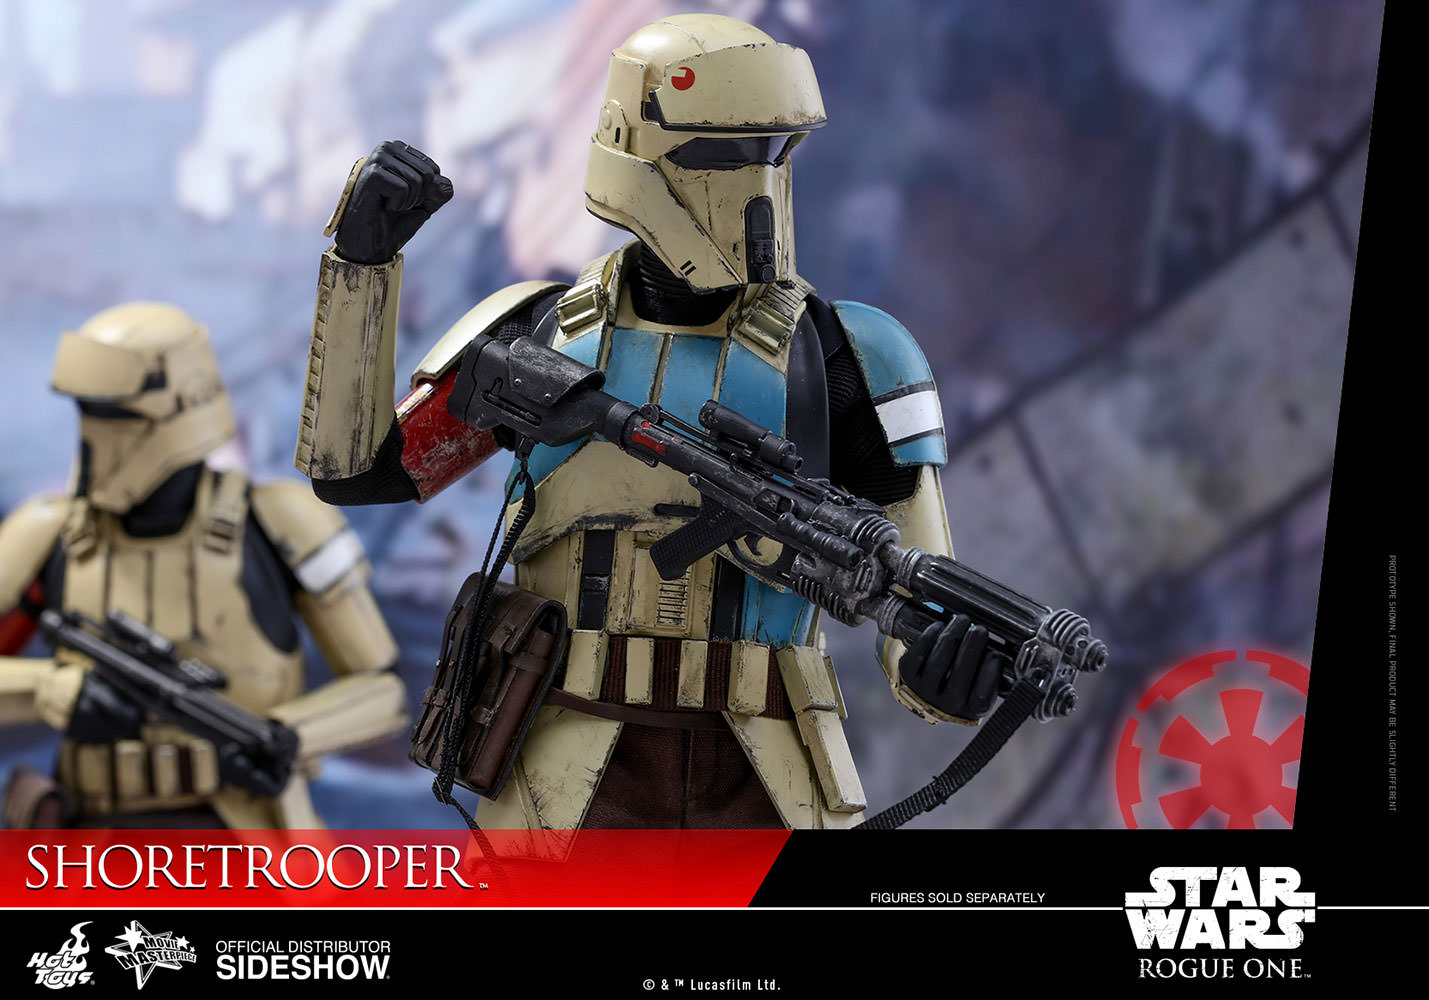 szmk_sideshow_star_wars_shoretrooper_6.jpg